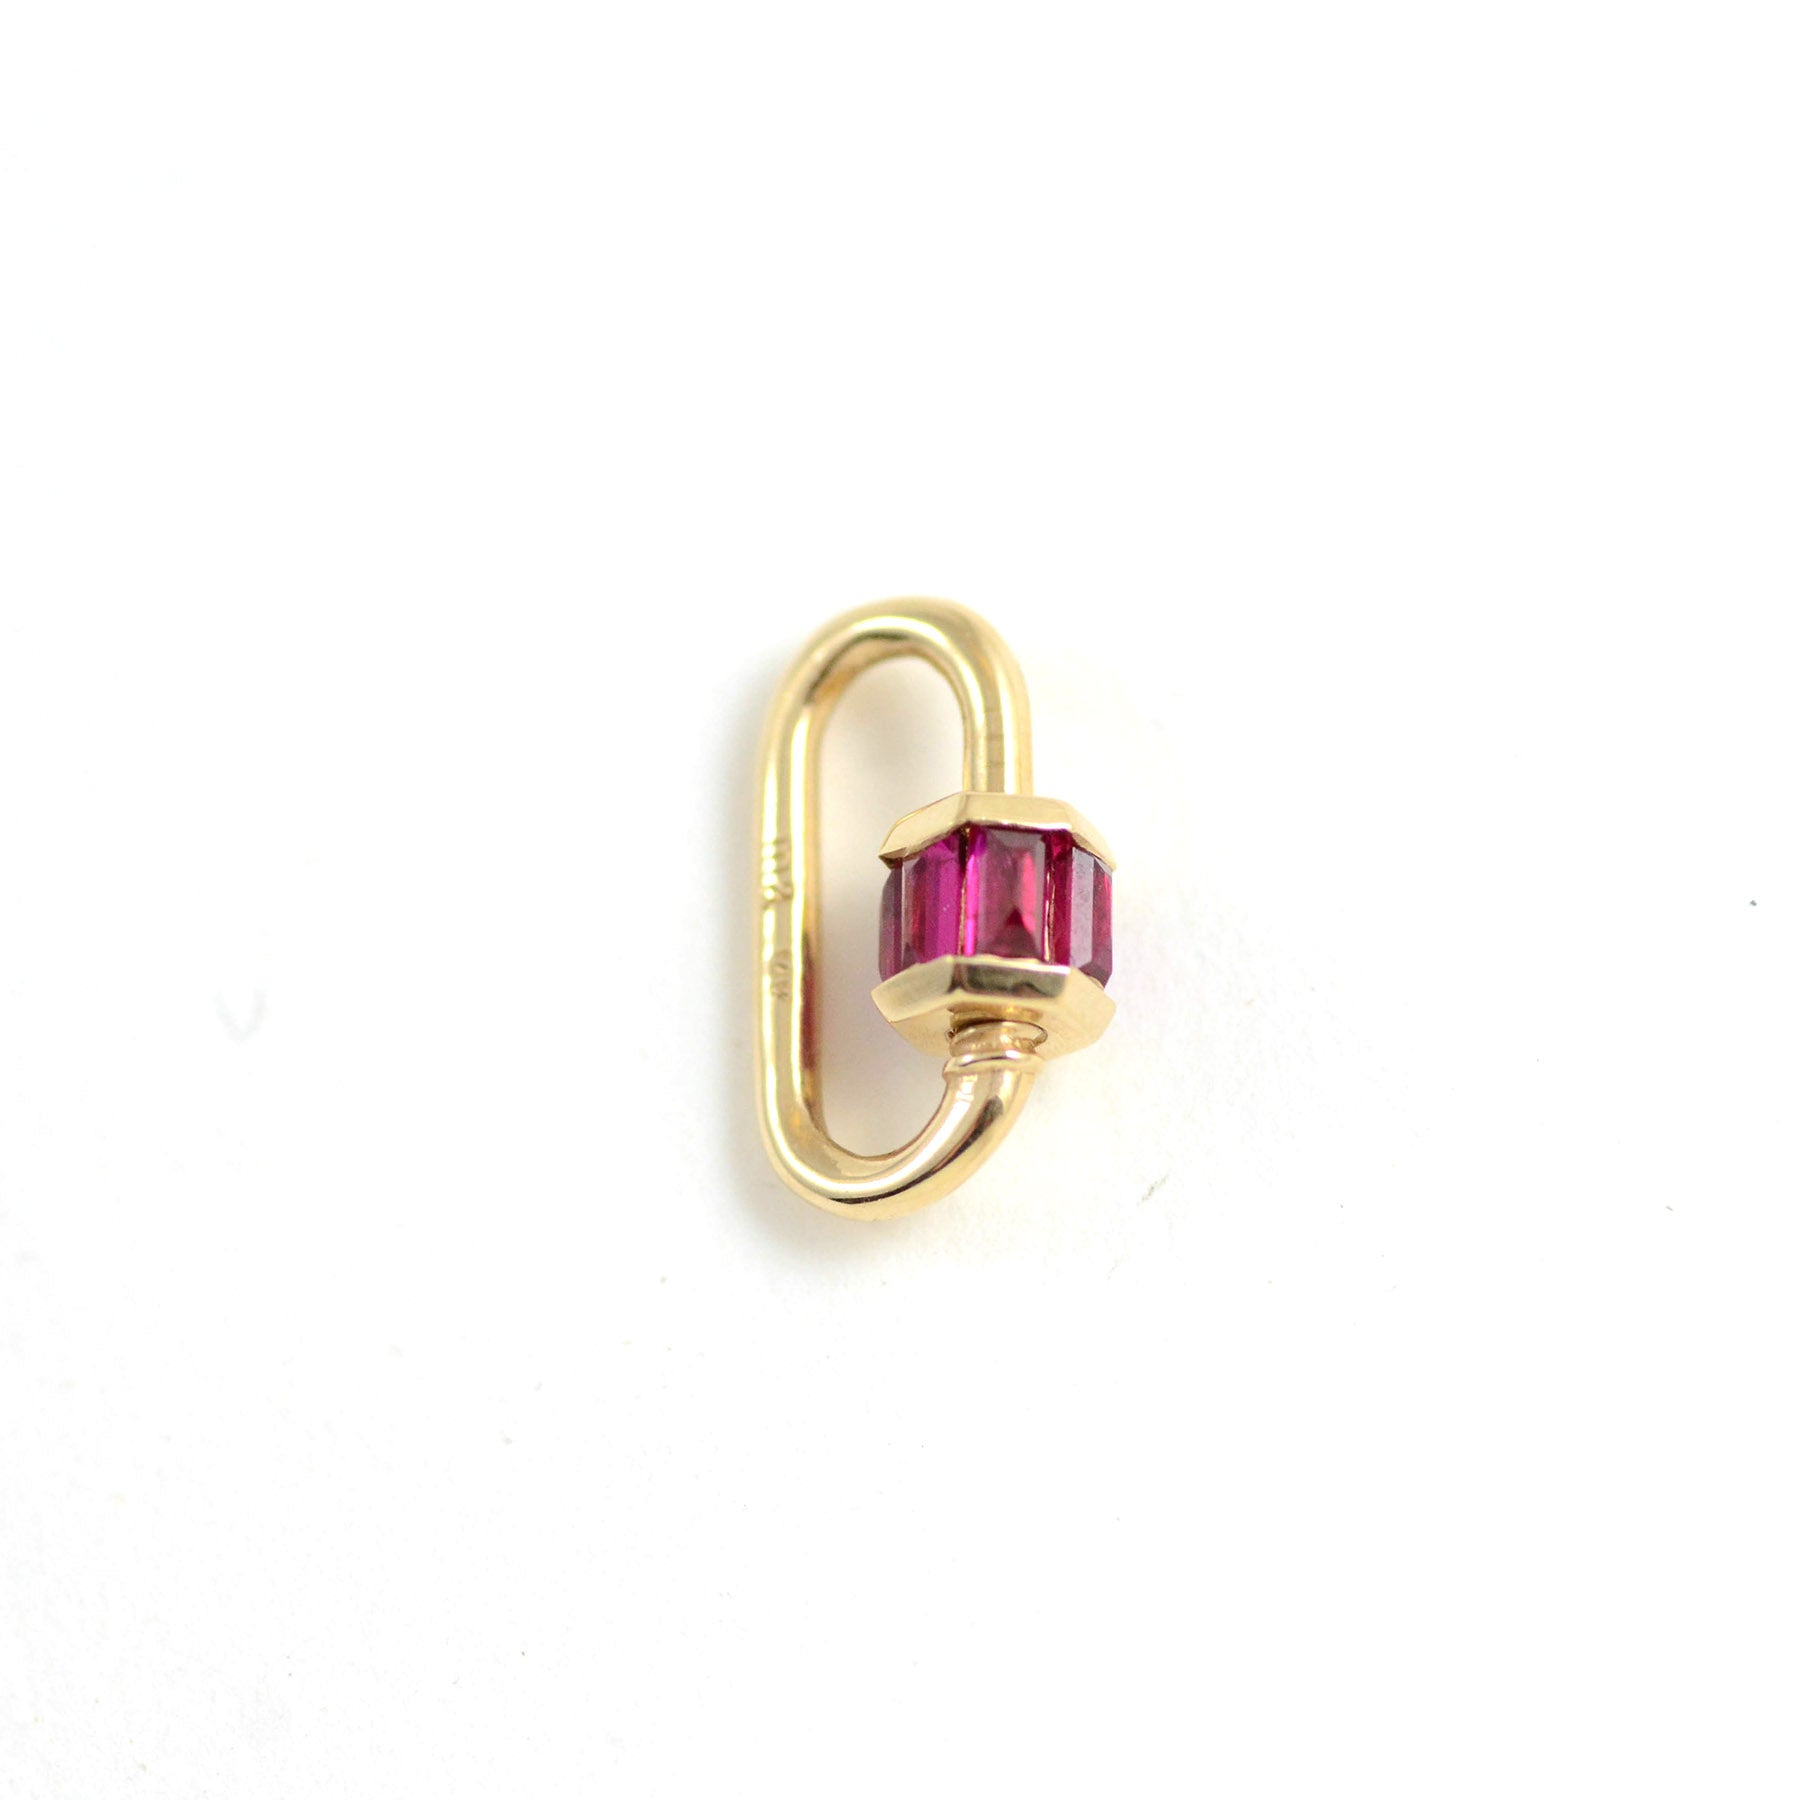 Total Baguette Babylock in Yellow Gold with Rubies